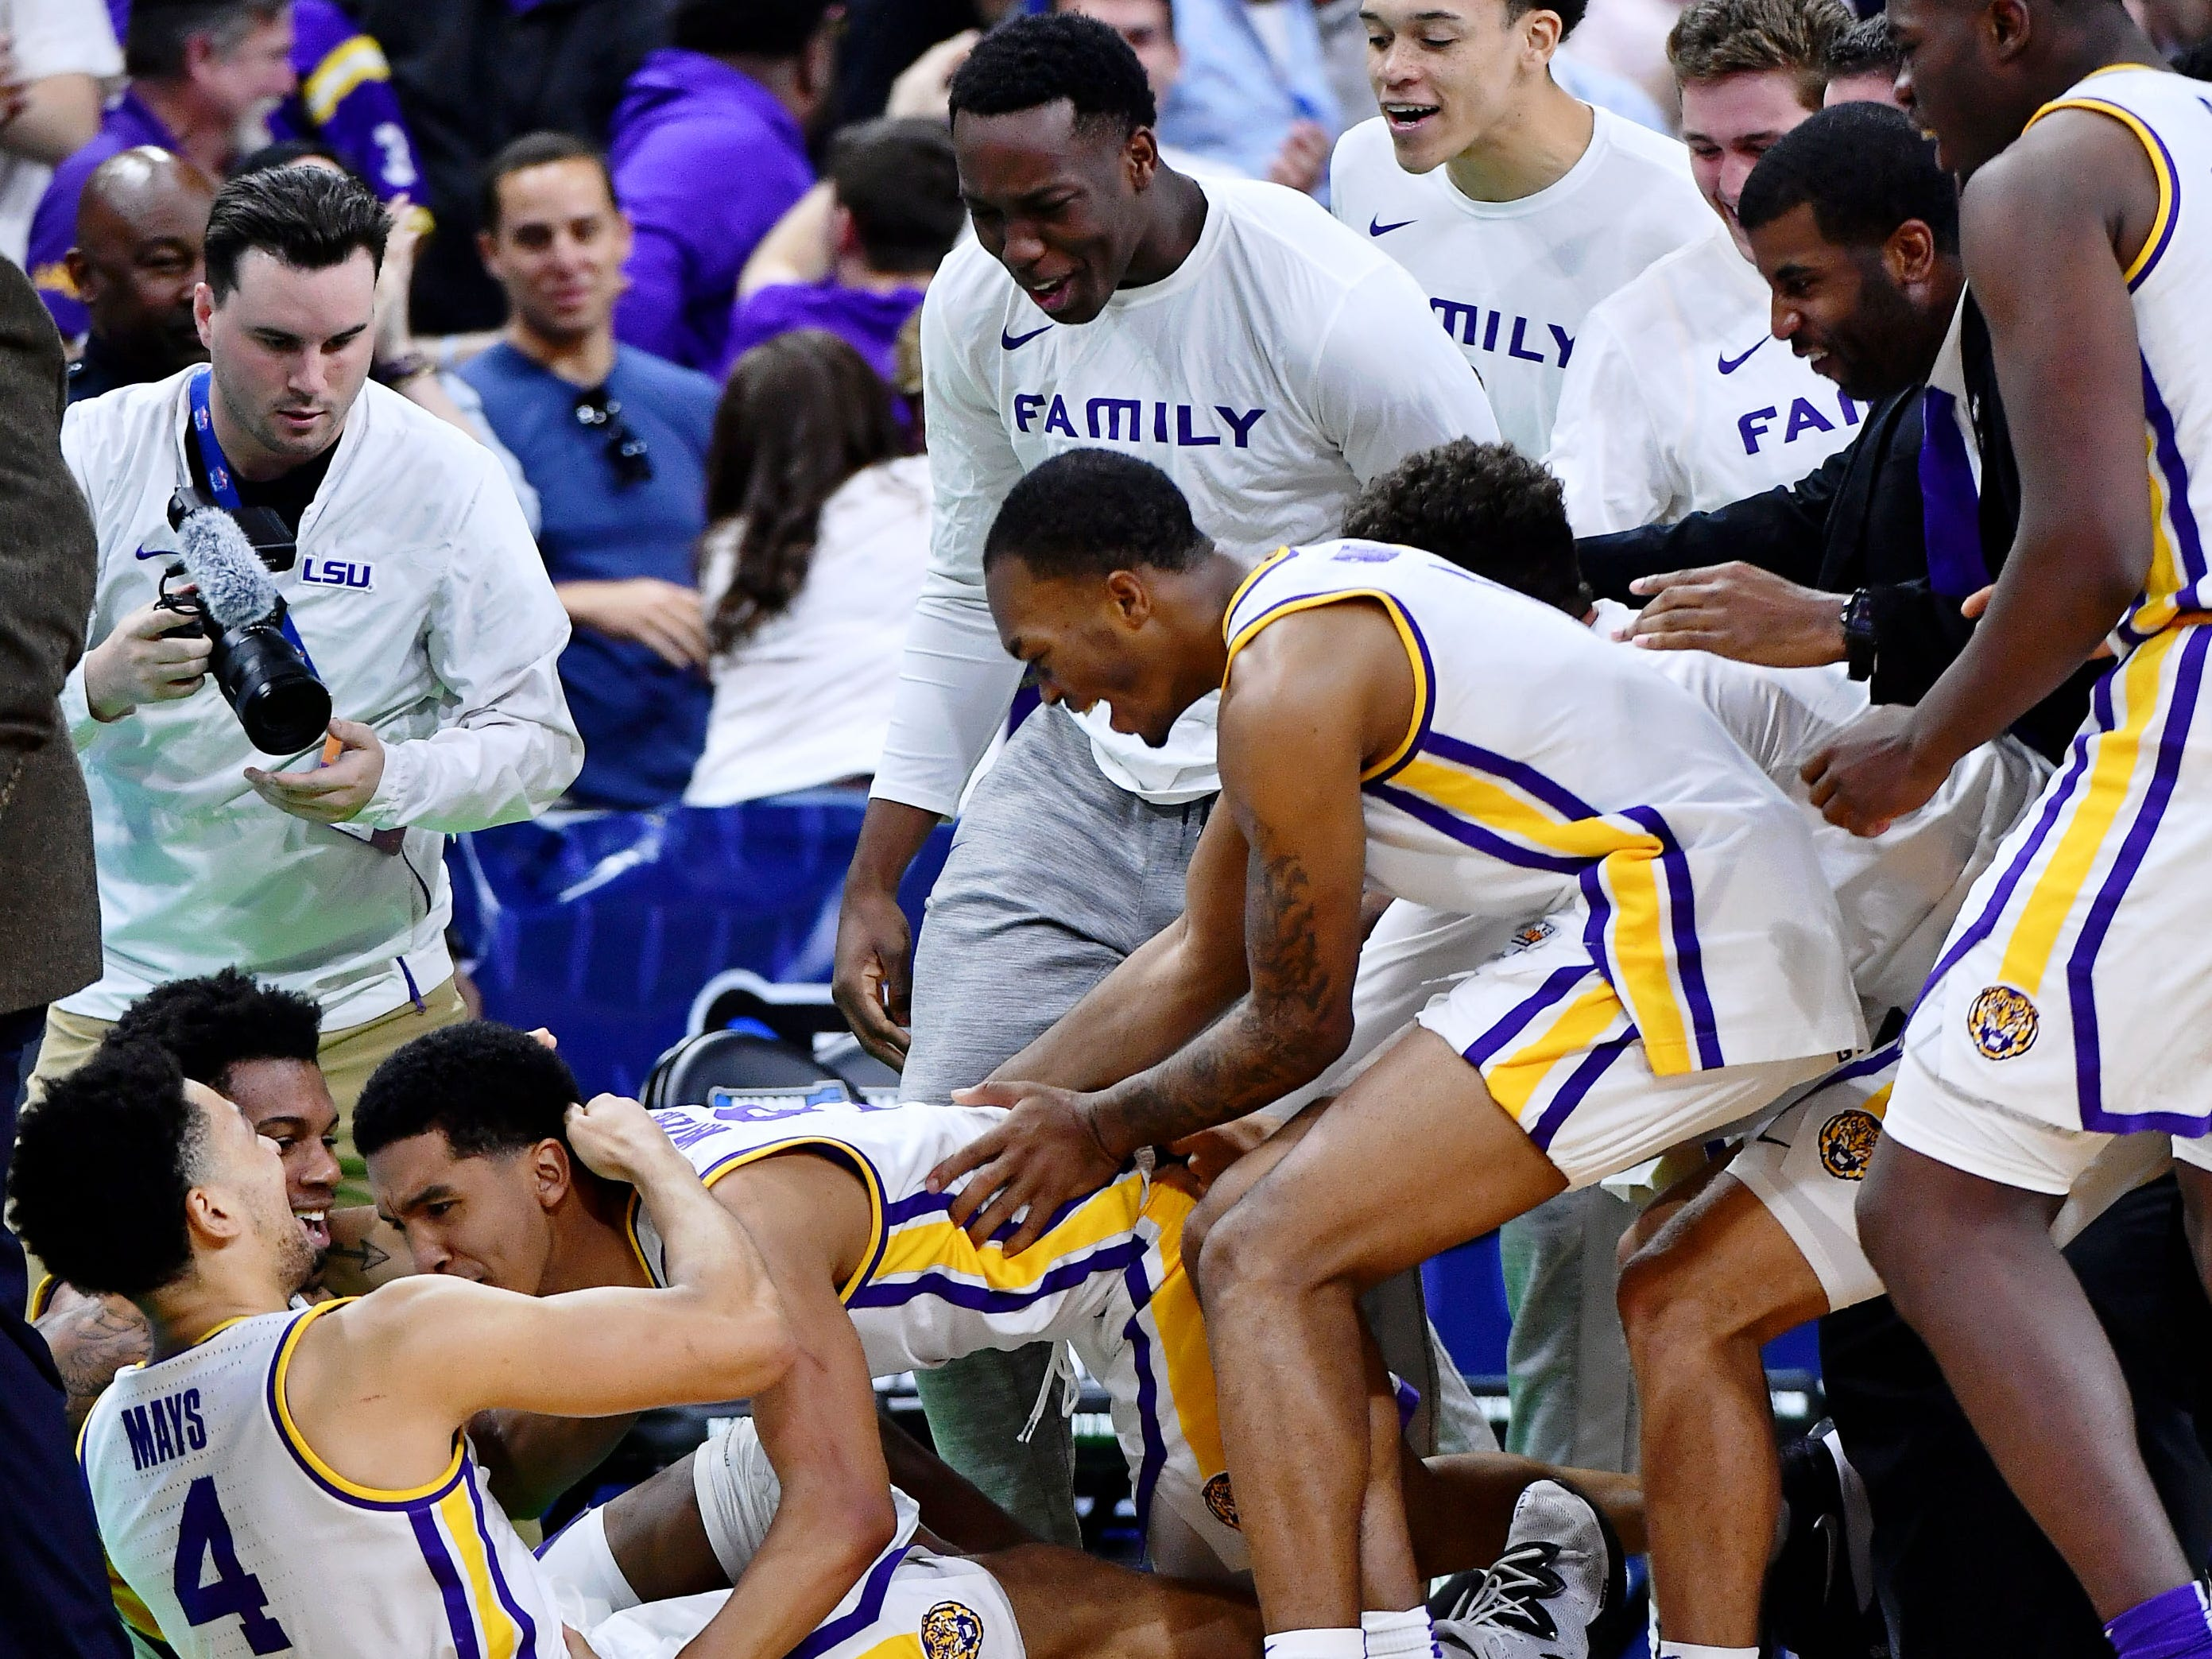 Mar 23, 2019; Jacksonville, FL, USA; The LSU Tigers celebrate their win over Maryland Terrapins in the second round of the 2019 NCAA Tournament at Jacksonville Veterans Memorial Arena. Mandatory Credit: The LSU Tigers won 69-67. John David Mercer-USA TODAY Sports